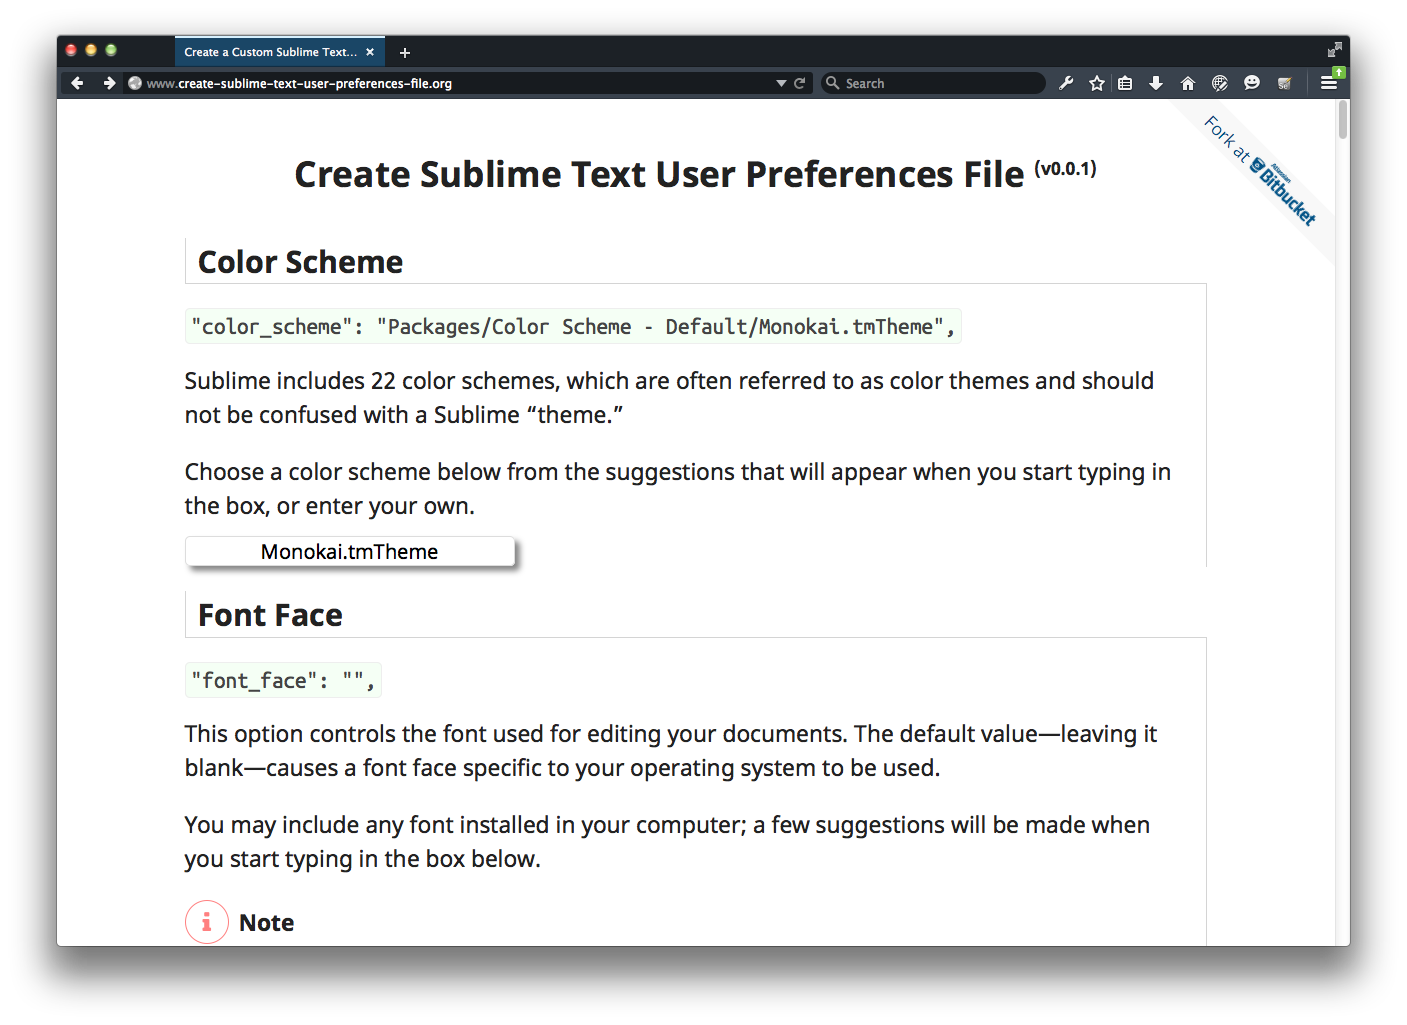 Screen Shot of http://www.create-sublime-text-user-preferences-file.org/